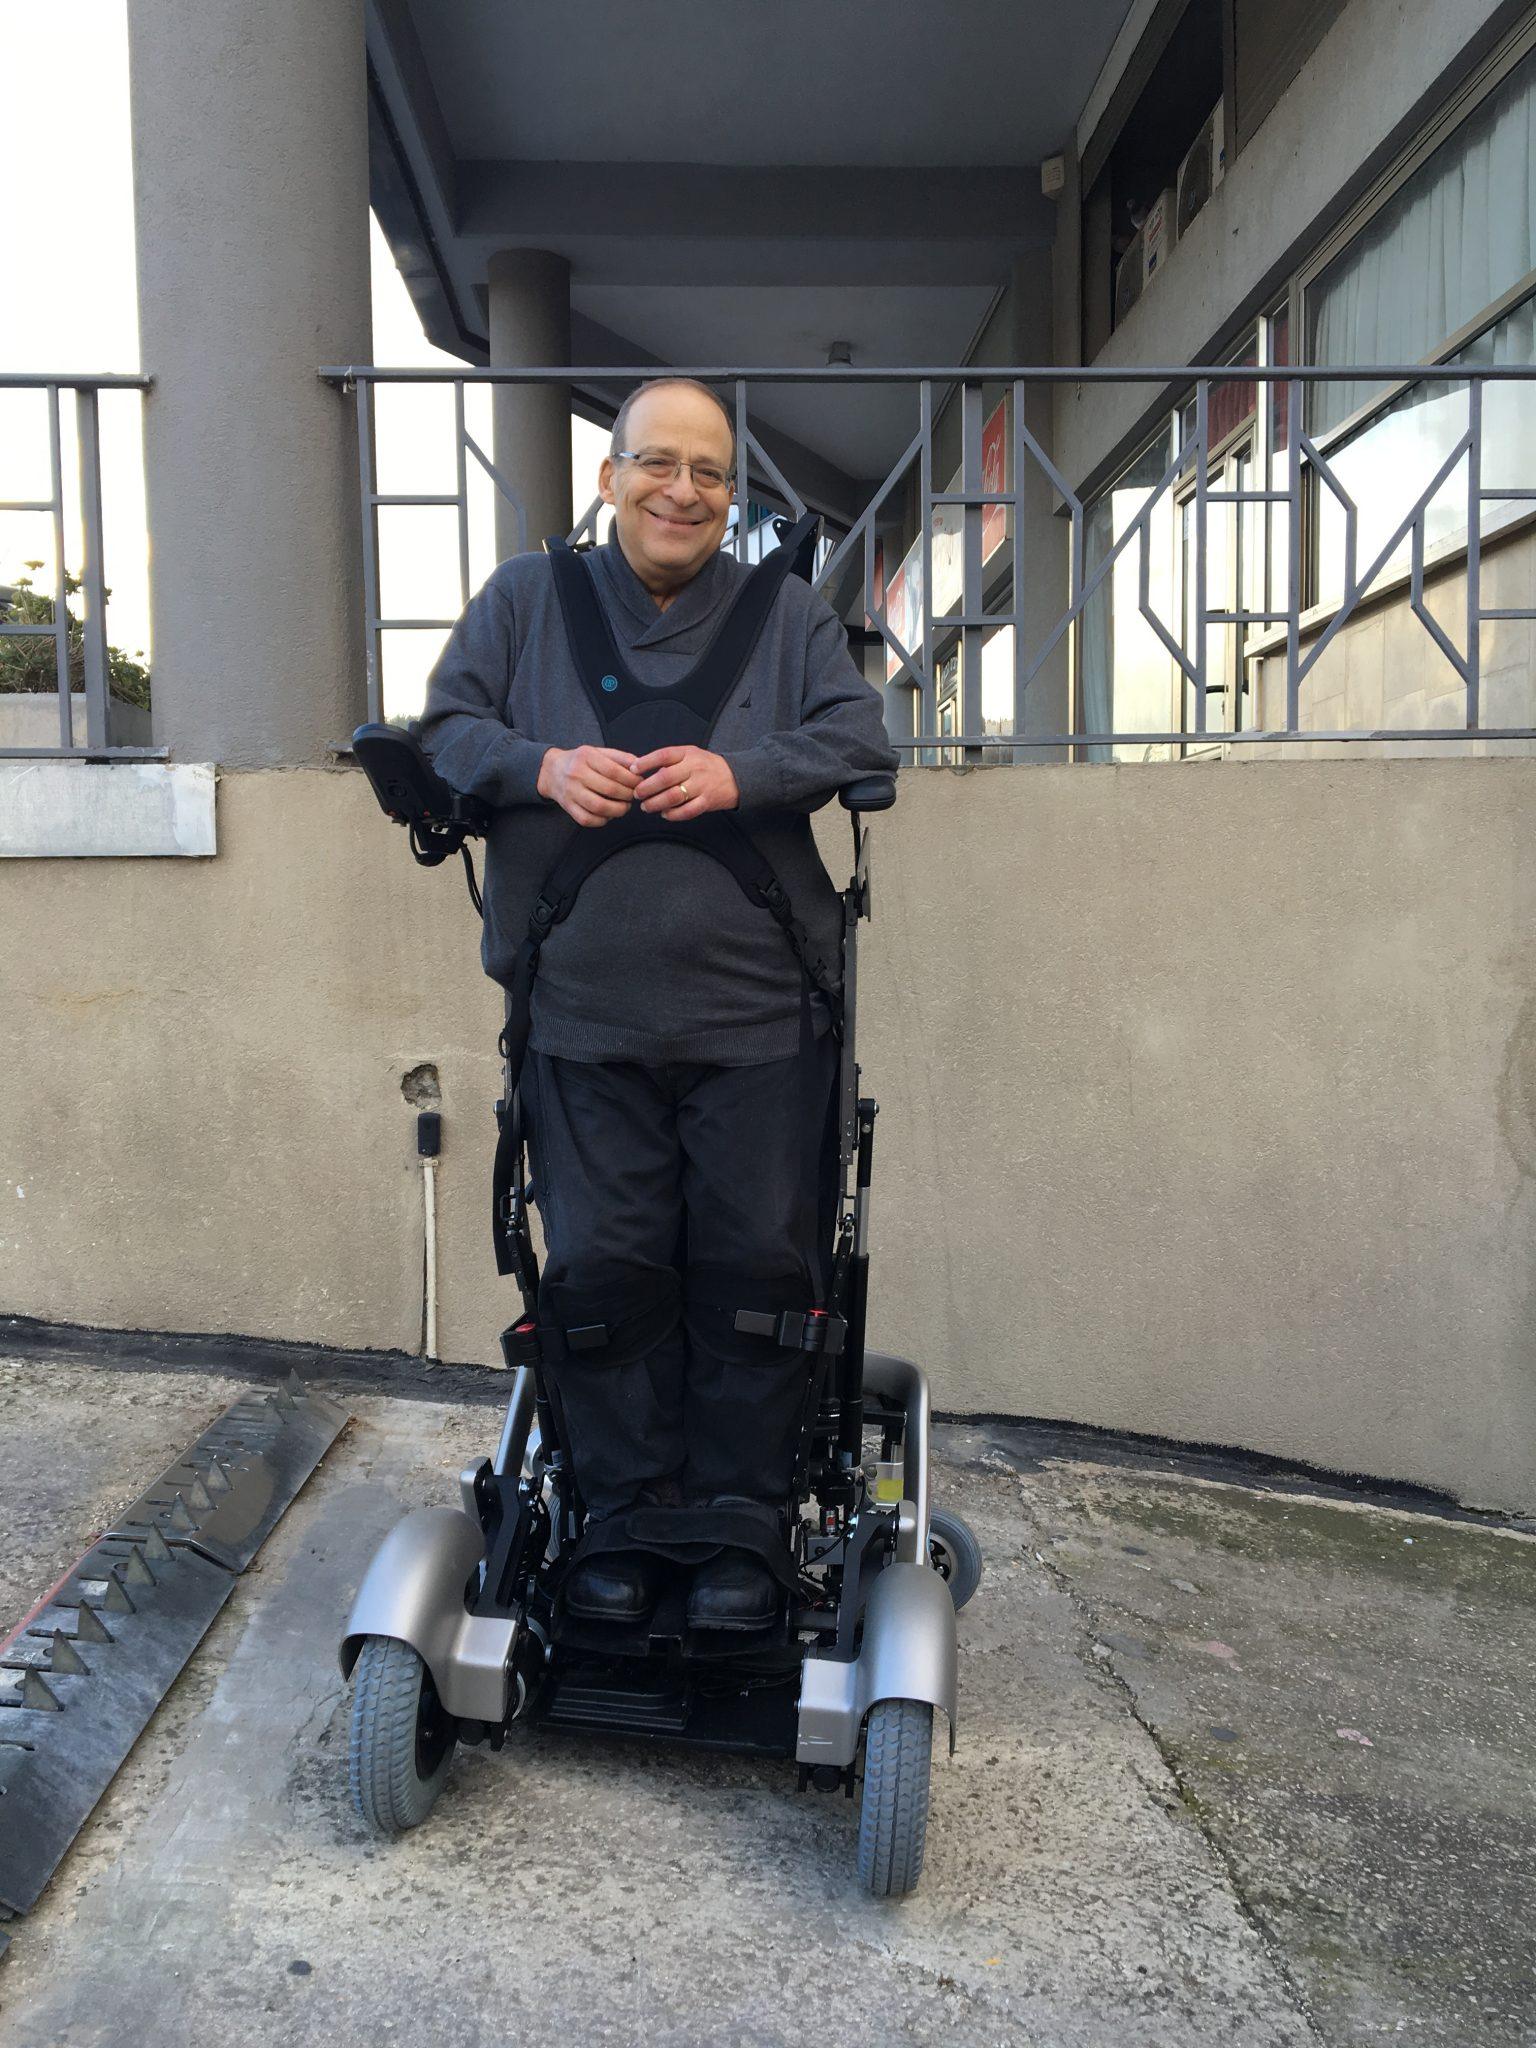 Founder of UpnRide trying out Israeli made upright wheelchair